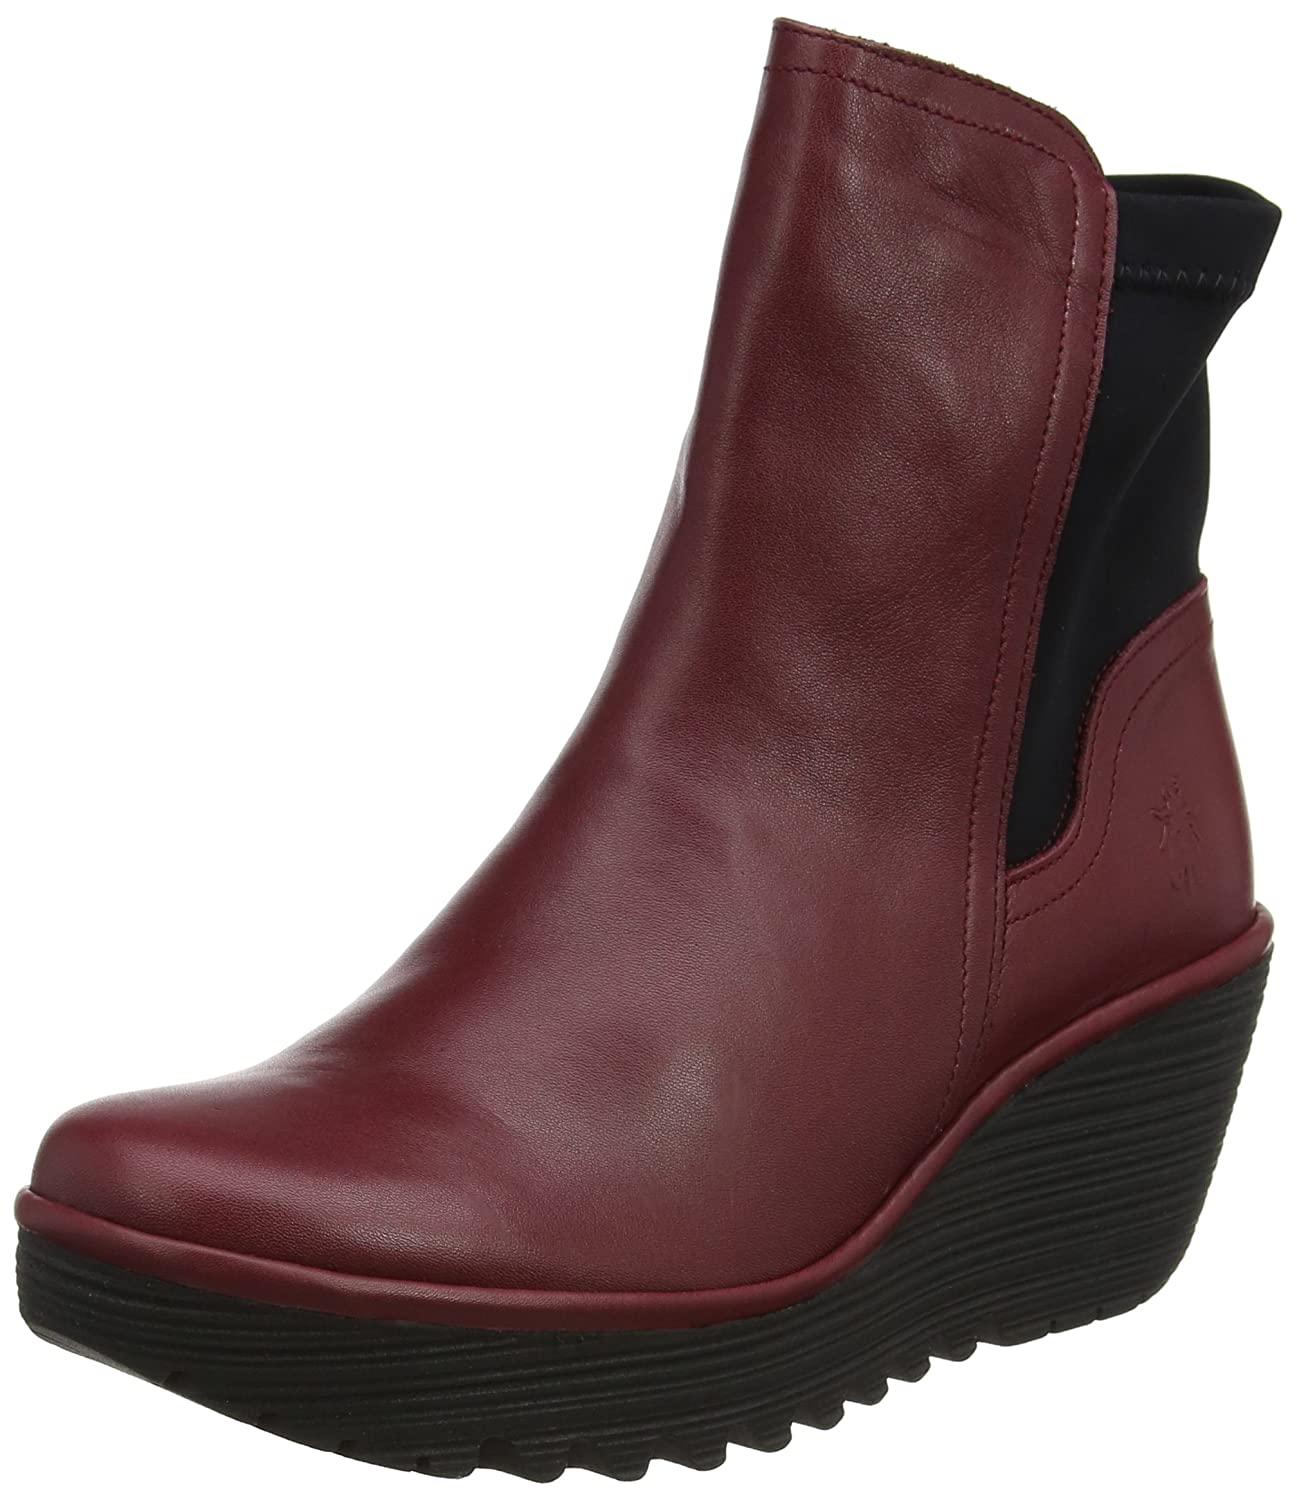 Womens Fly London Yuan Casual Winter Wedges Fashion Leather Ankle Boots B0728CHZ56 8 B(M) US|Cordoba Red/Black